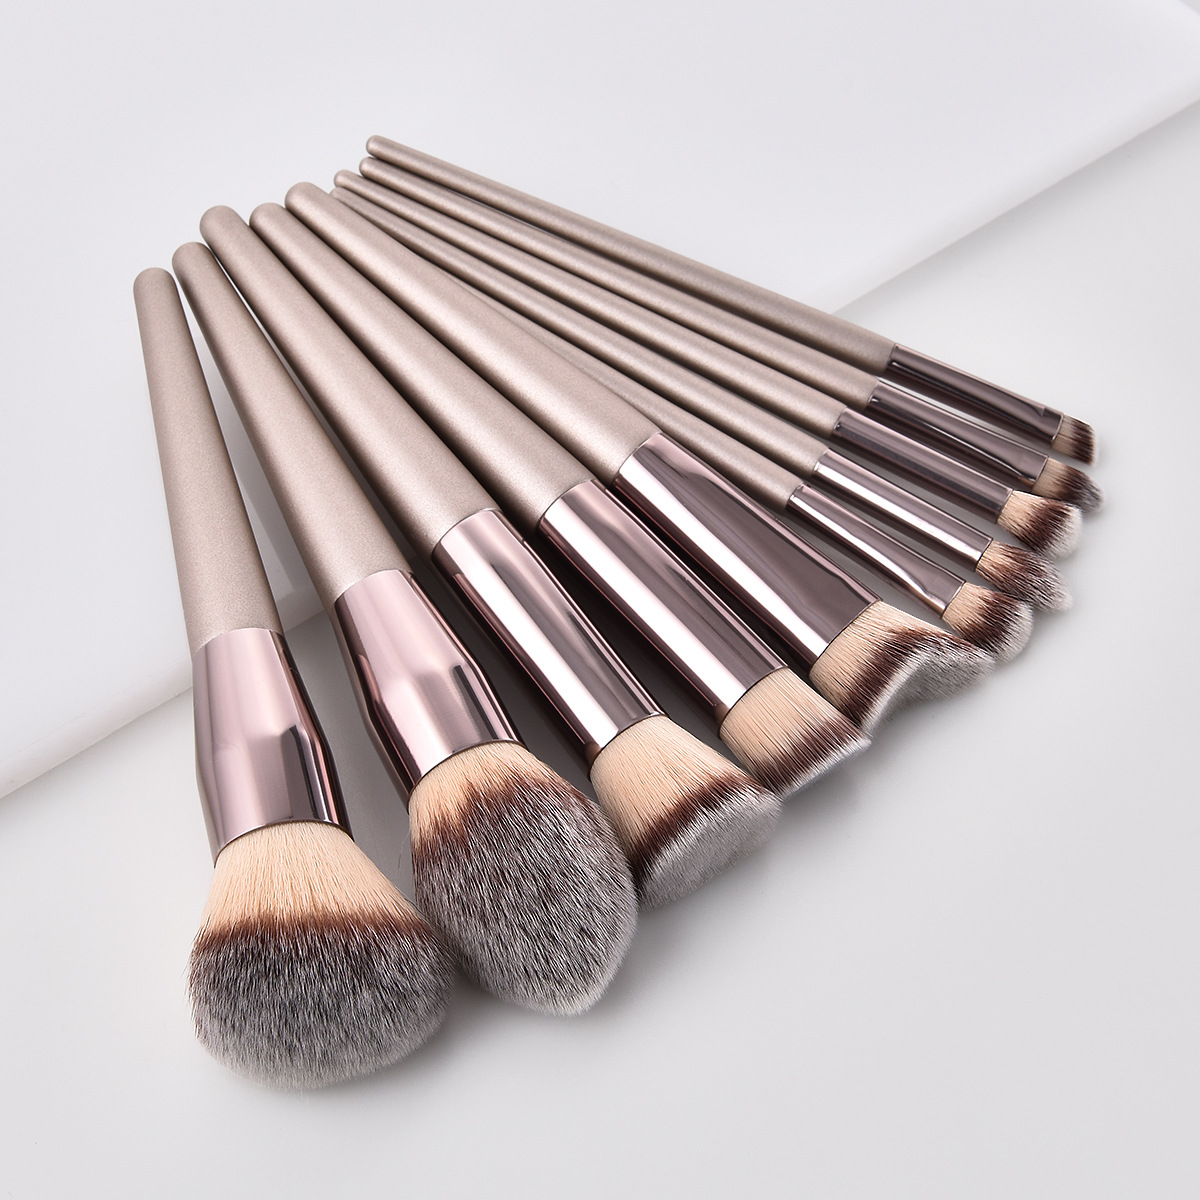 Luxury Champagne Makeup Brushes Foundation Powder Blush Eyeshadow Eyelash Concealer Lip Eye Blending Brush Make Up Brushes Set